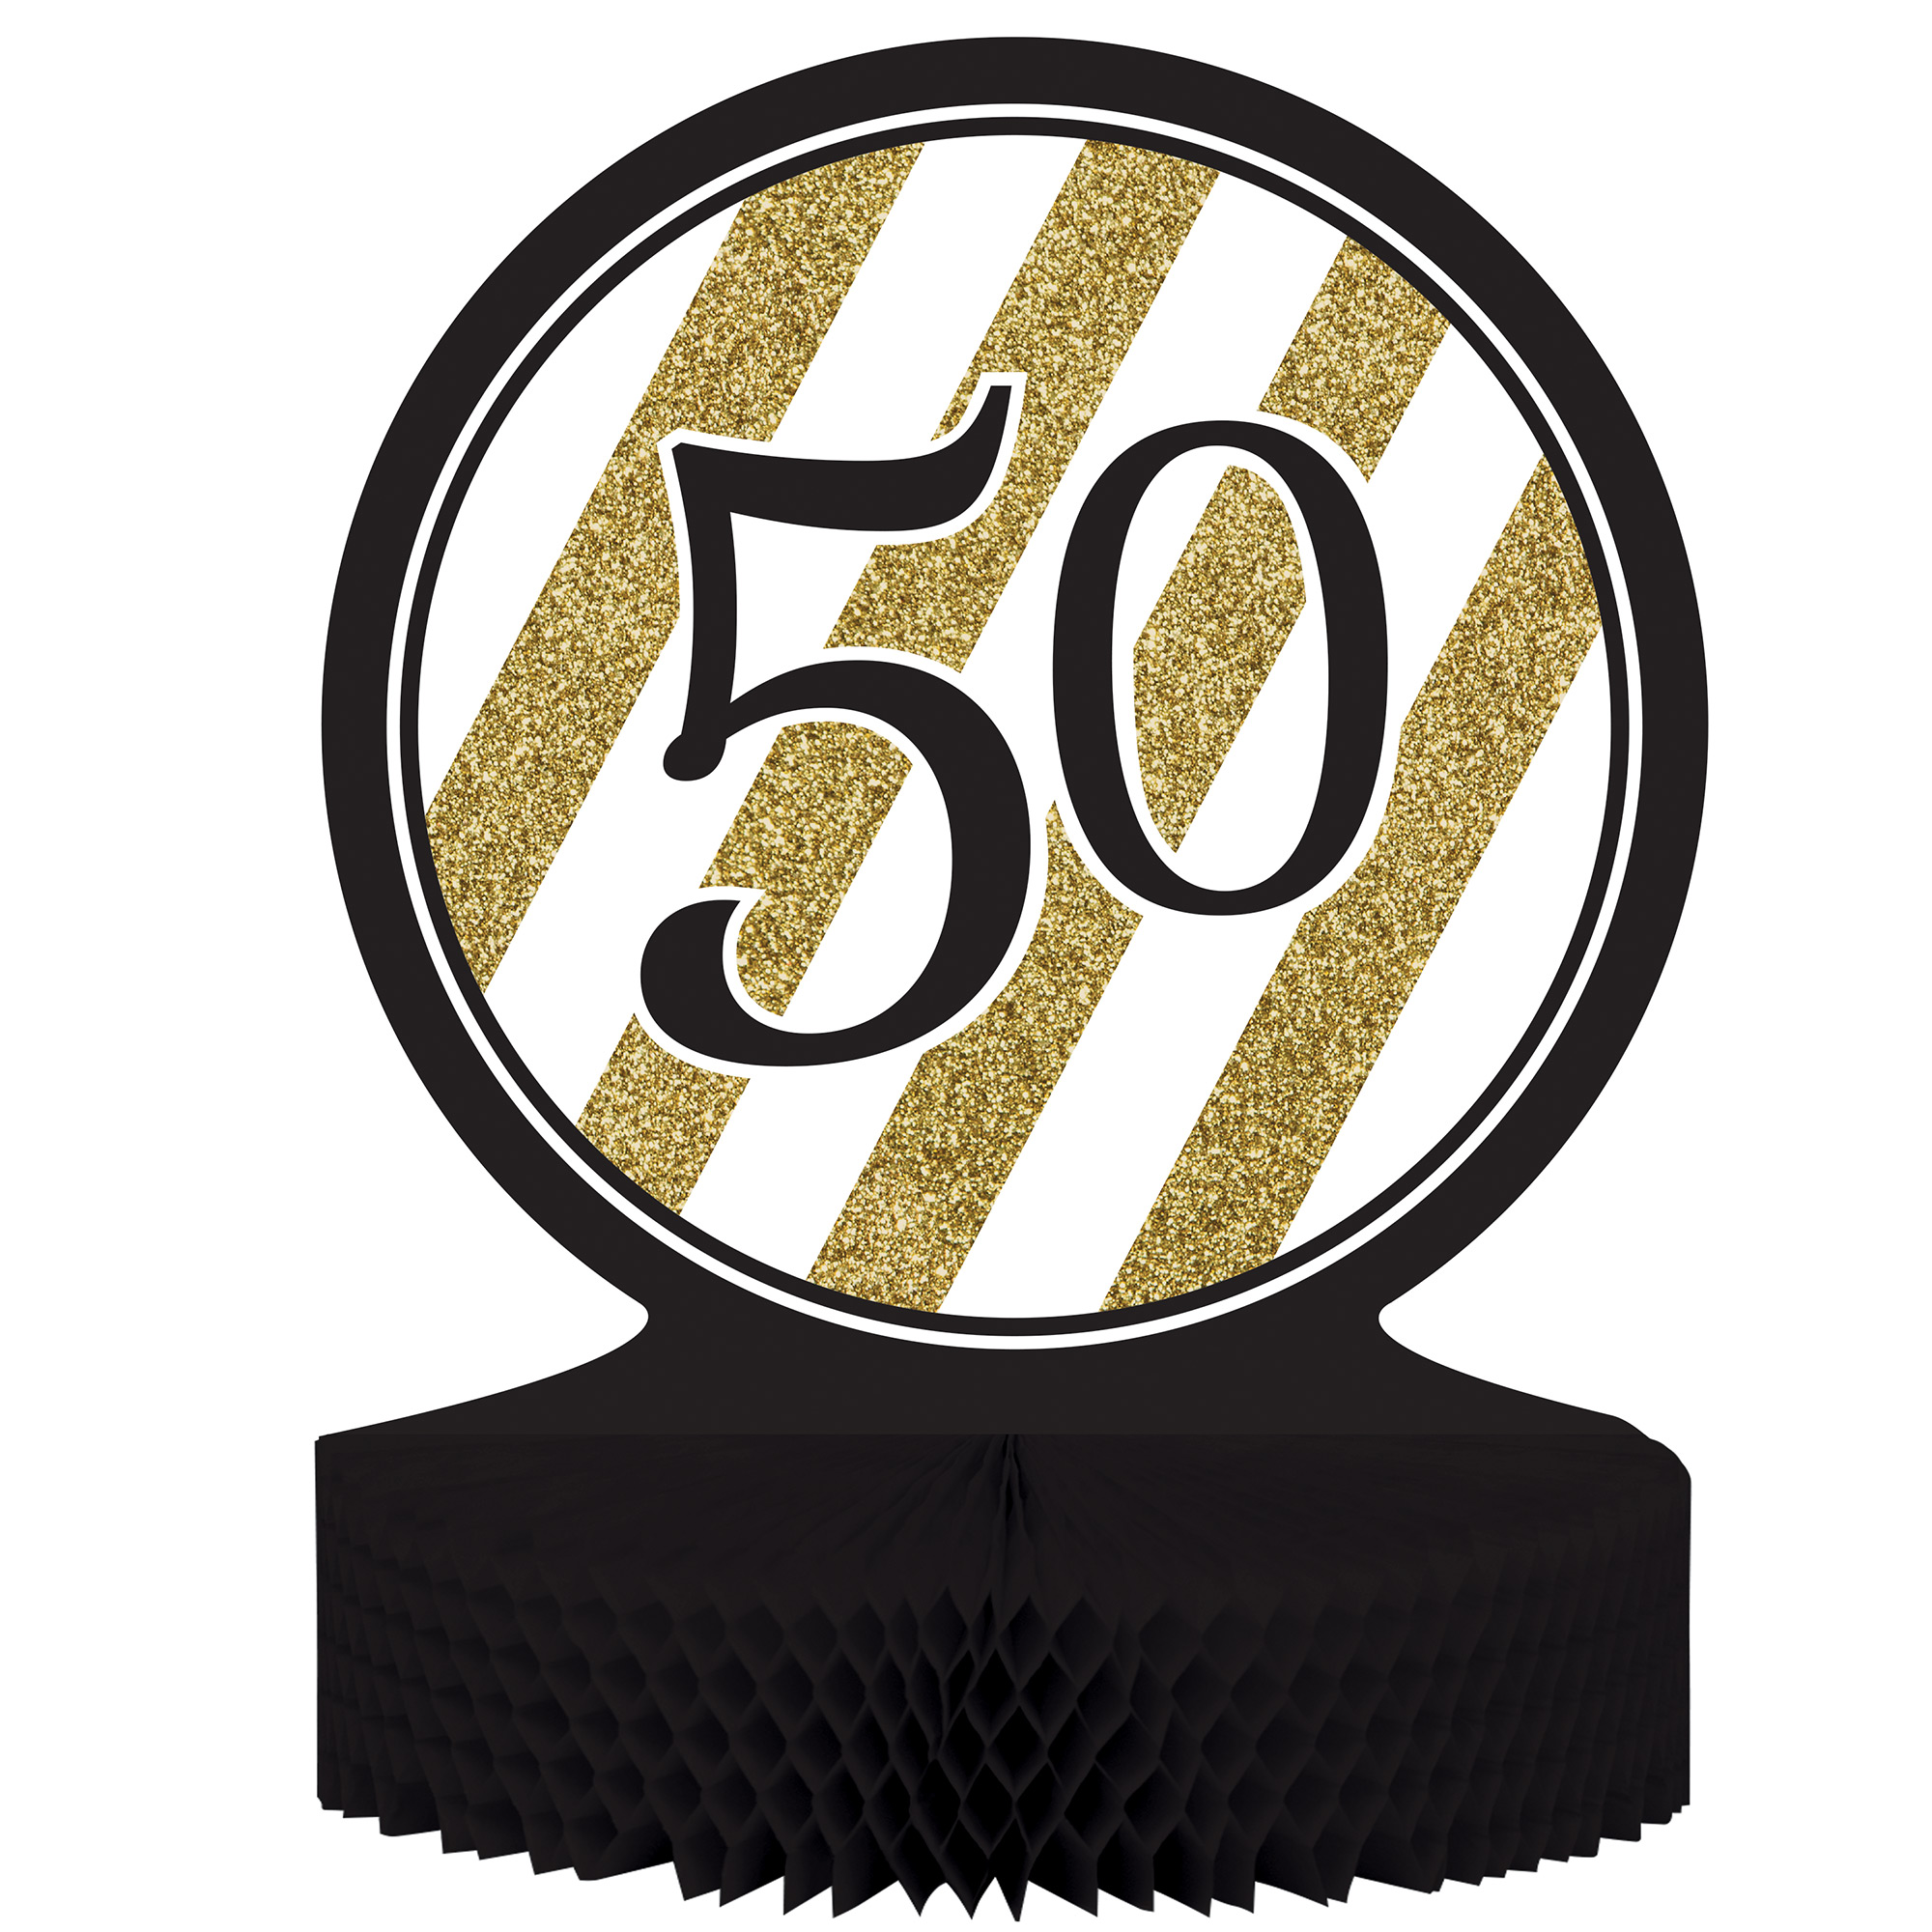 "Black & Gold 50th Birthday Honeycomb Centerpiece 12"" x 9"", Case of 6"